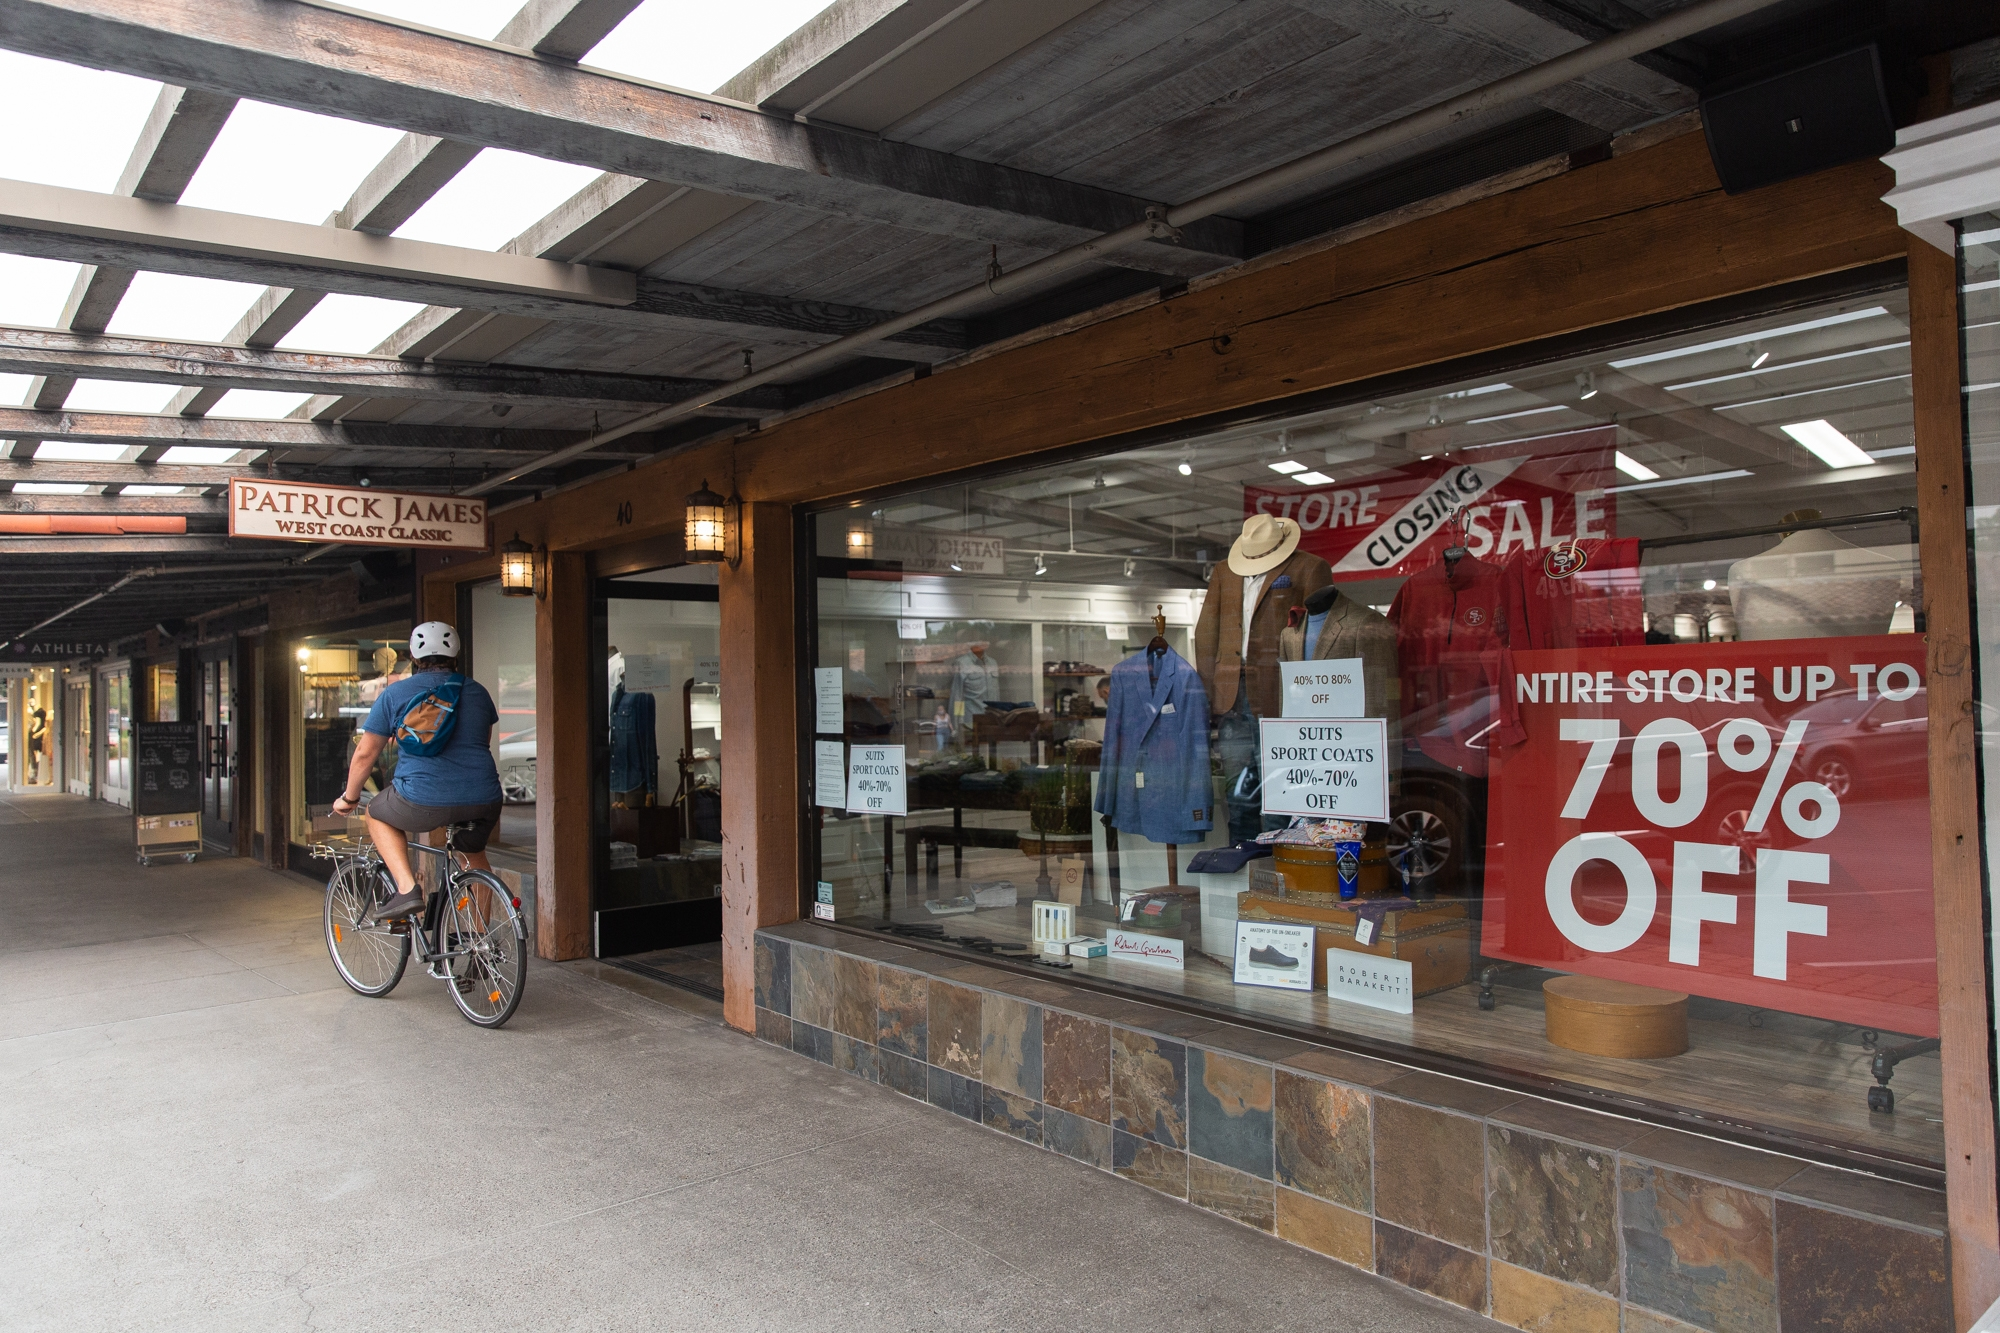 As stores struggle, Palo Alto prepares to let offices fill retail spaces